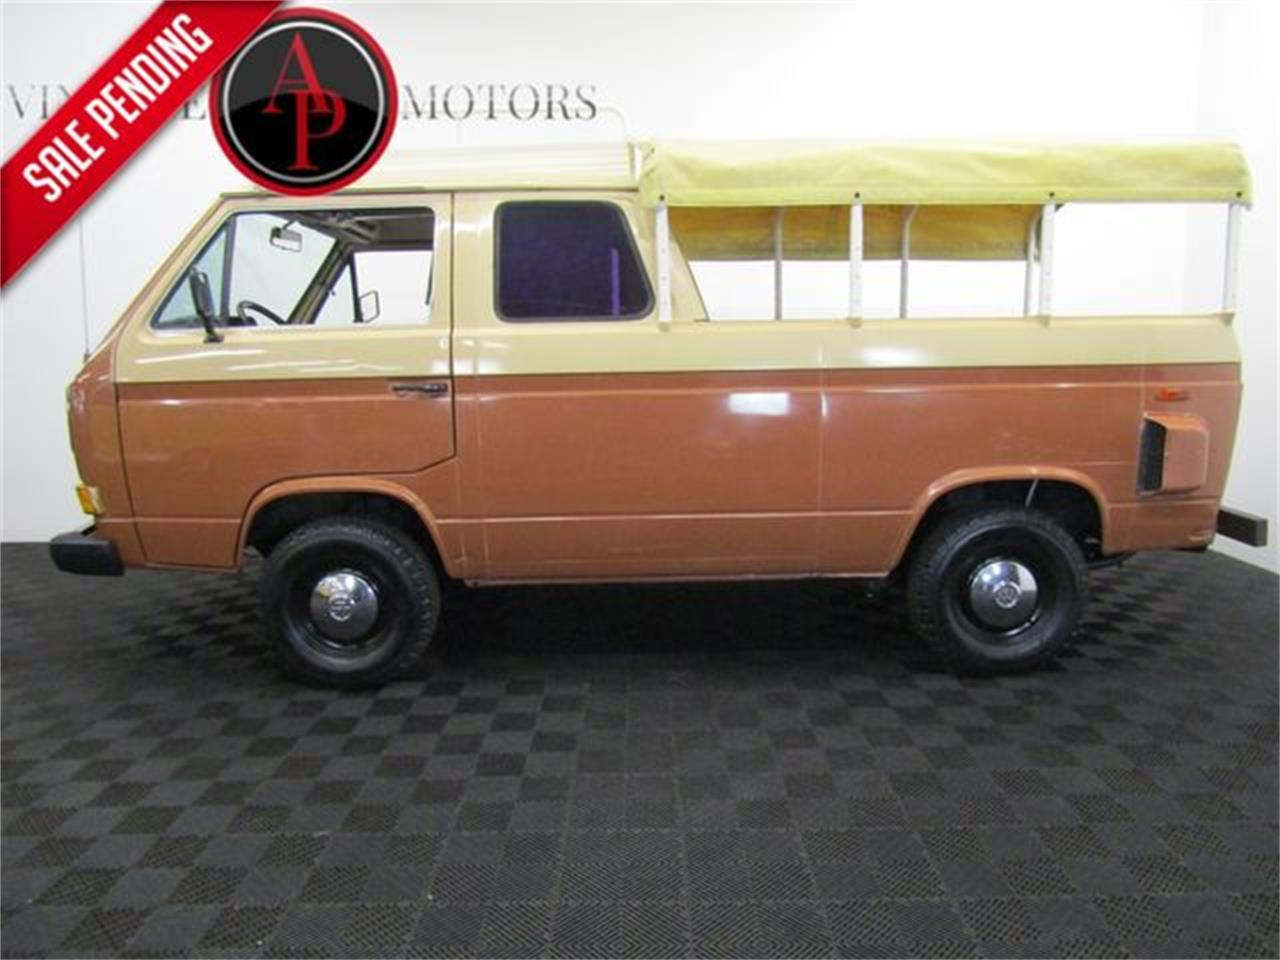 for sale 1984 volkswagen vanagon in statesville, north carolina cars - statesville, nc at geebo